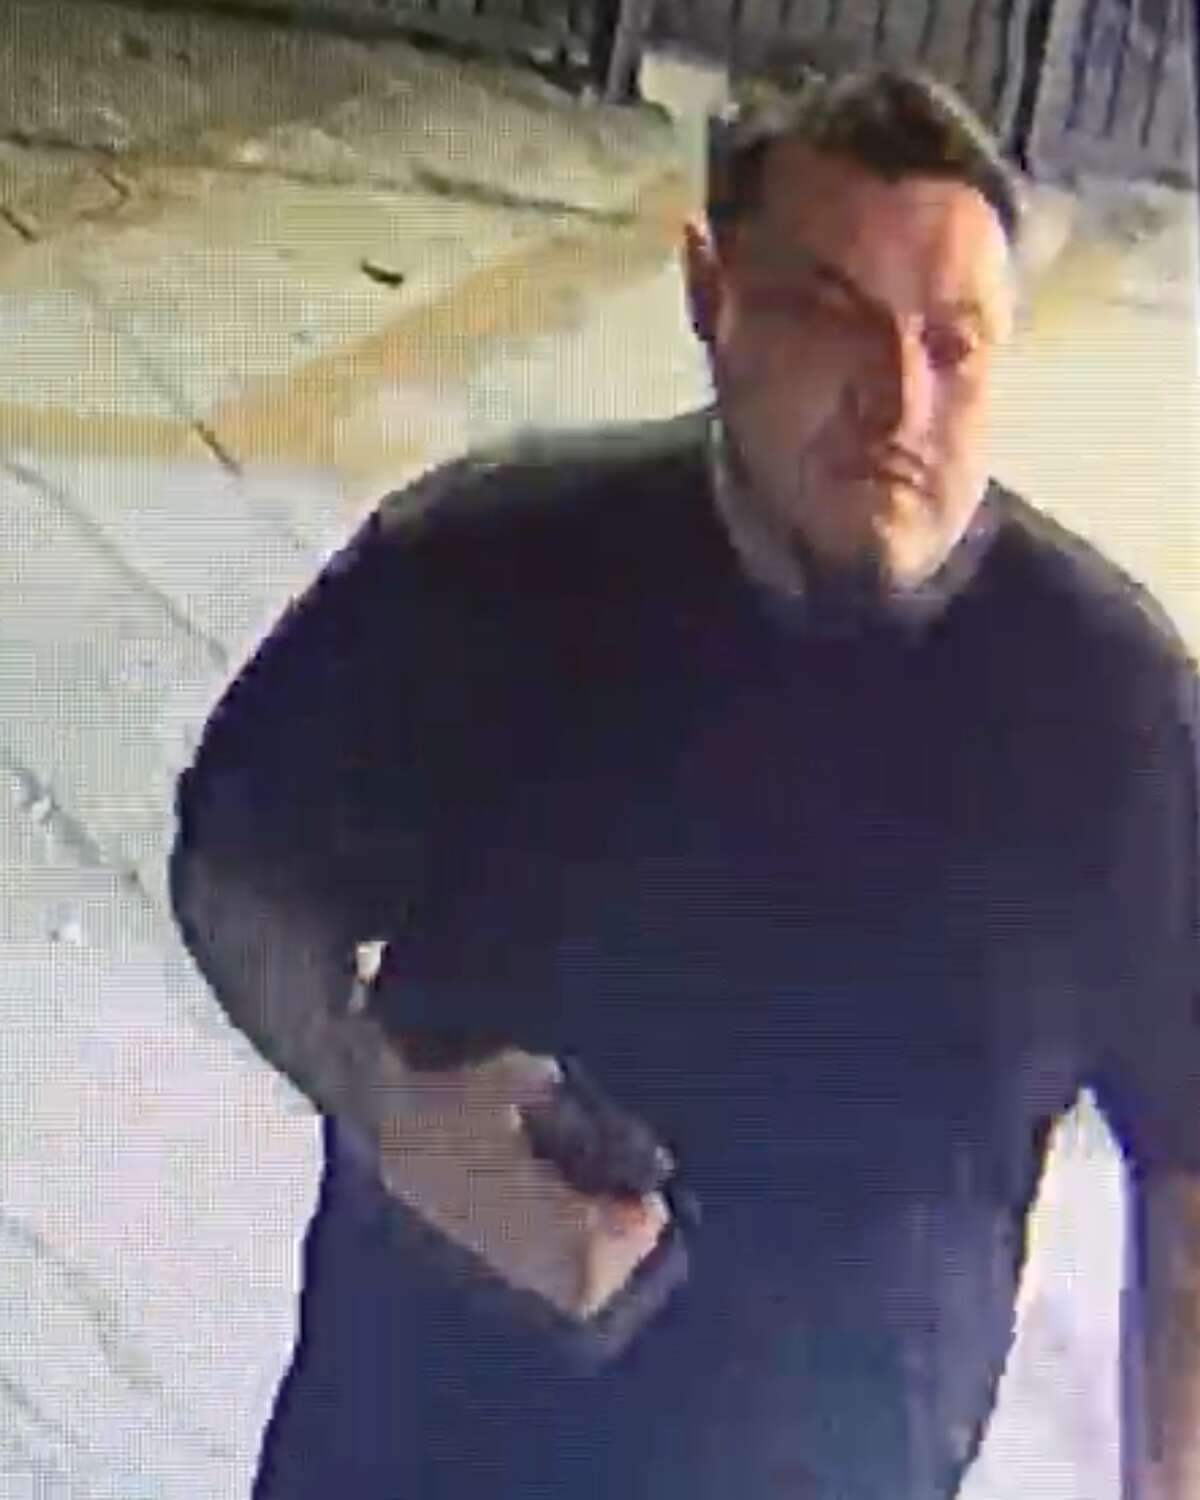 San Antonio police are searching to two men who are accused of stealing a motorcycle from a downtown street.